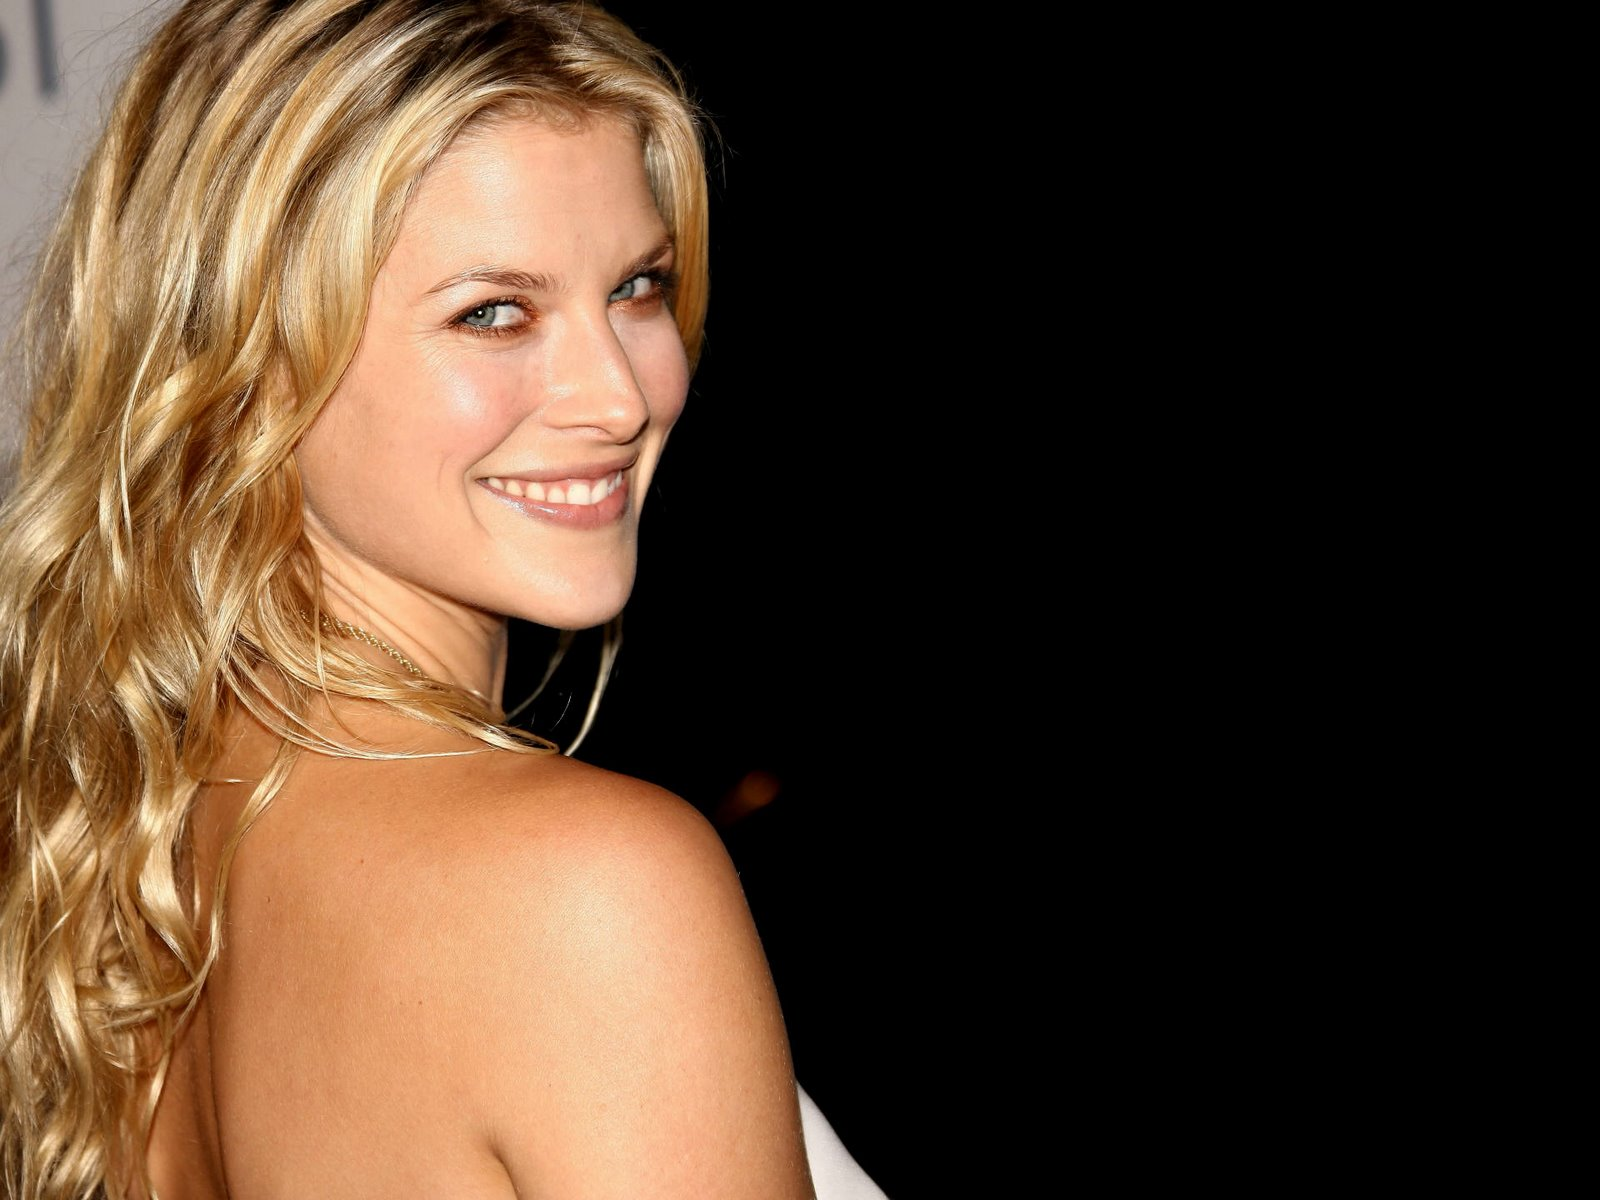 free non watermarked wallpapers of ali larter at fullwalls blogspot